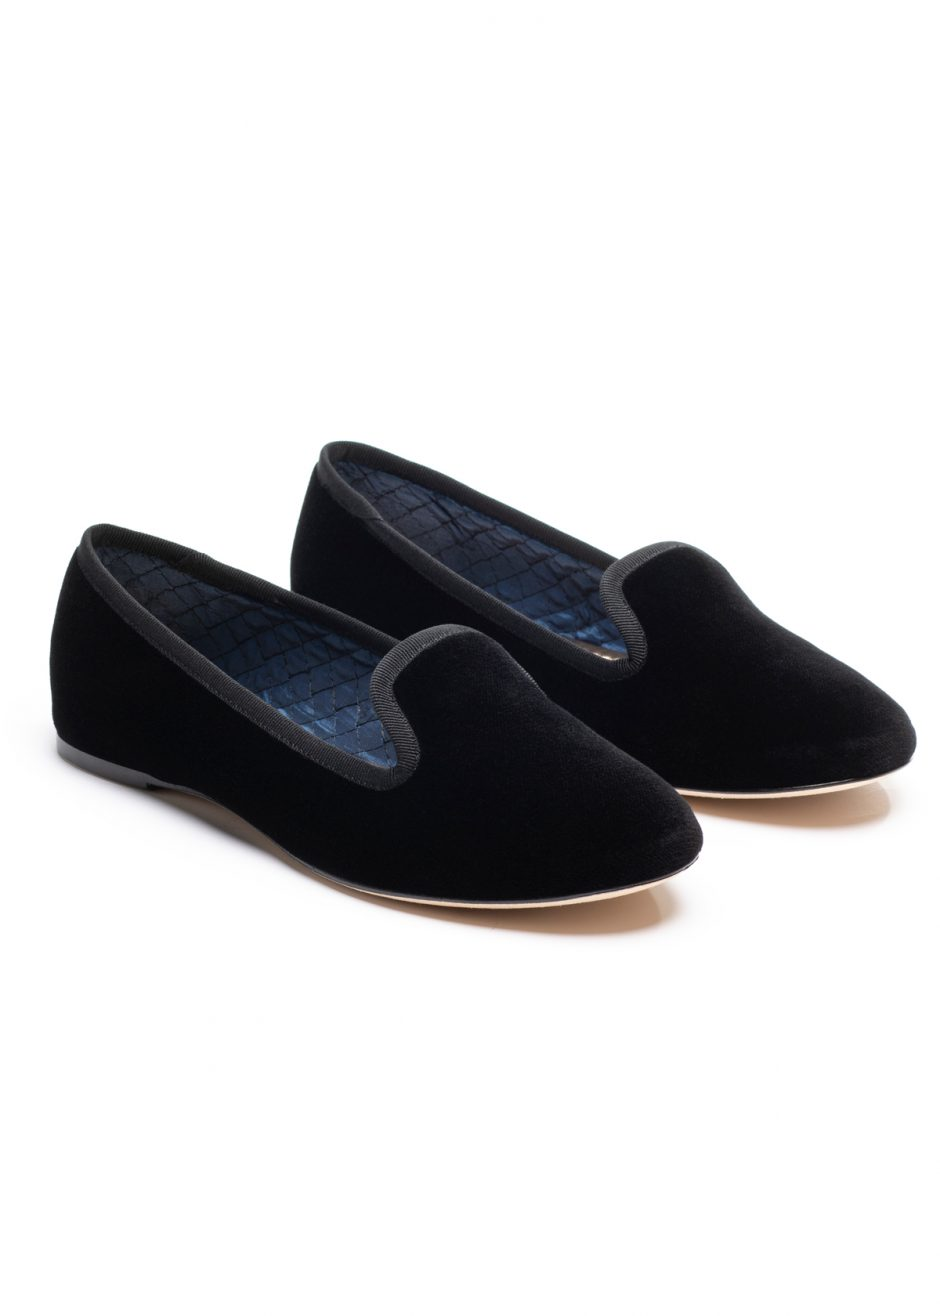 Casanova – Slipper black velvet